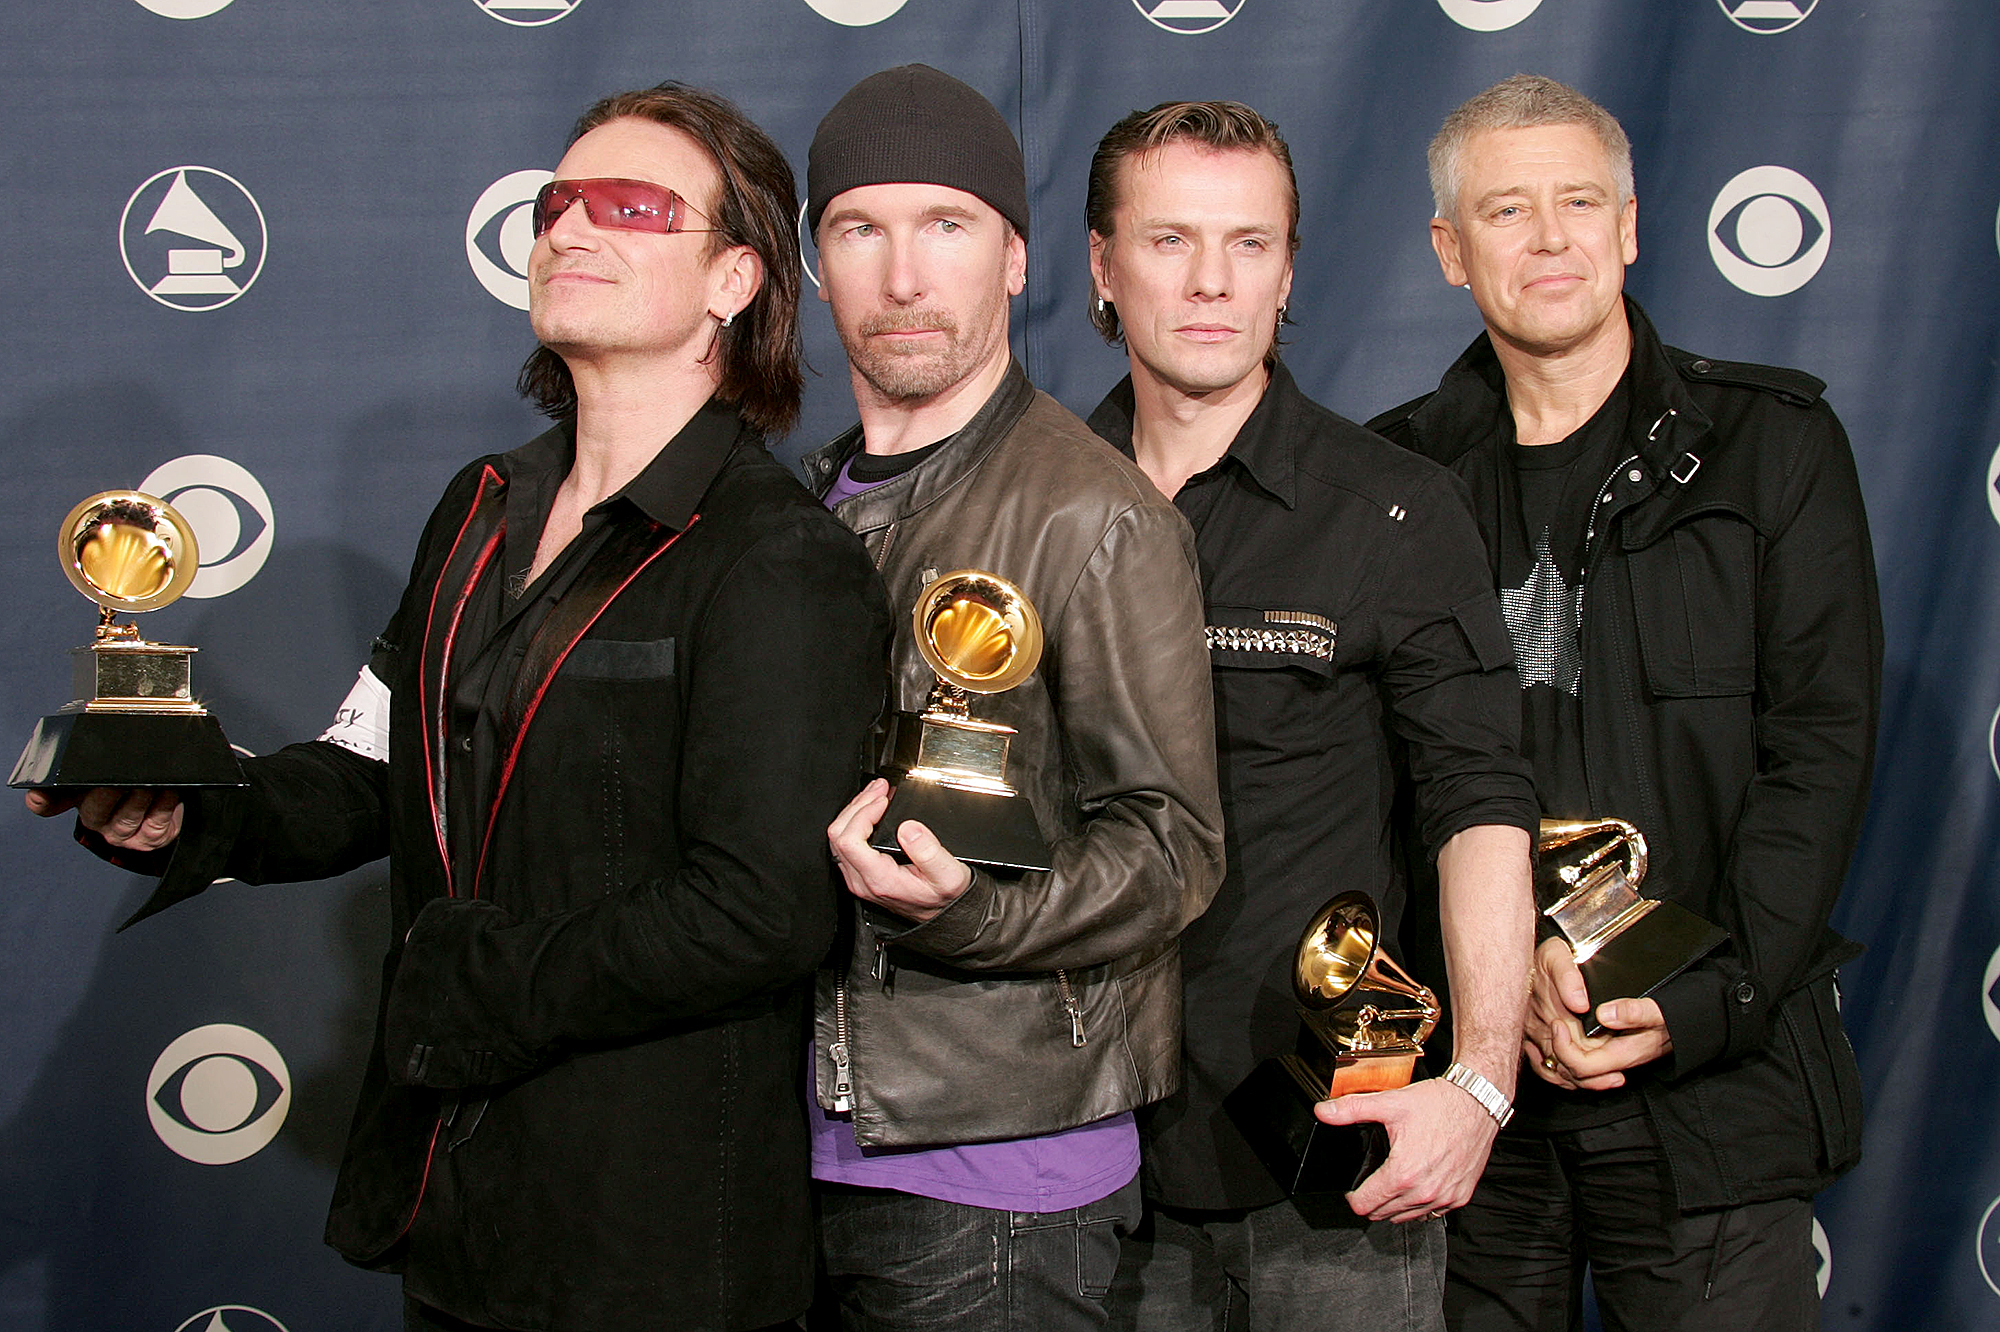 U2-grammy-awards - U2 has earned 22 Grammys to date. In 2005, the Irish rock band won Album of the Year, Song of the Year, Best Rock Performance by a Duo or Group with Vocal, Best Rock Song and Best Rock Album.